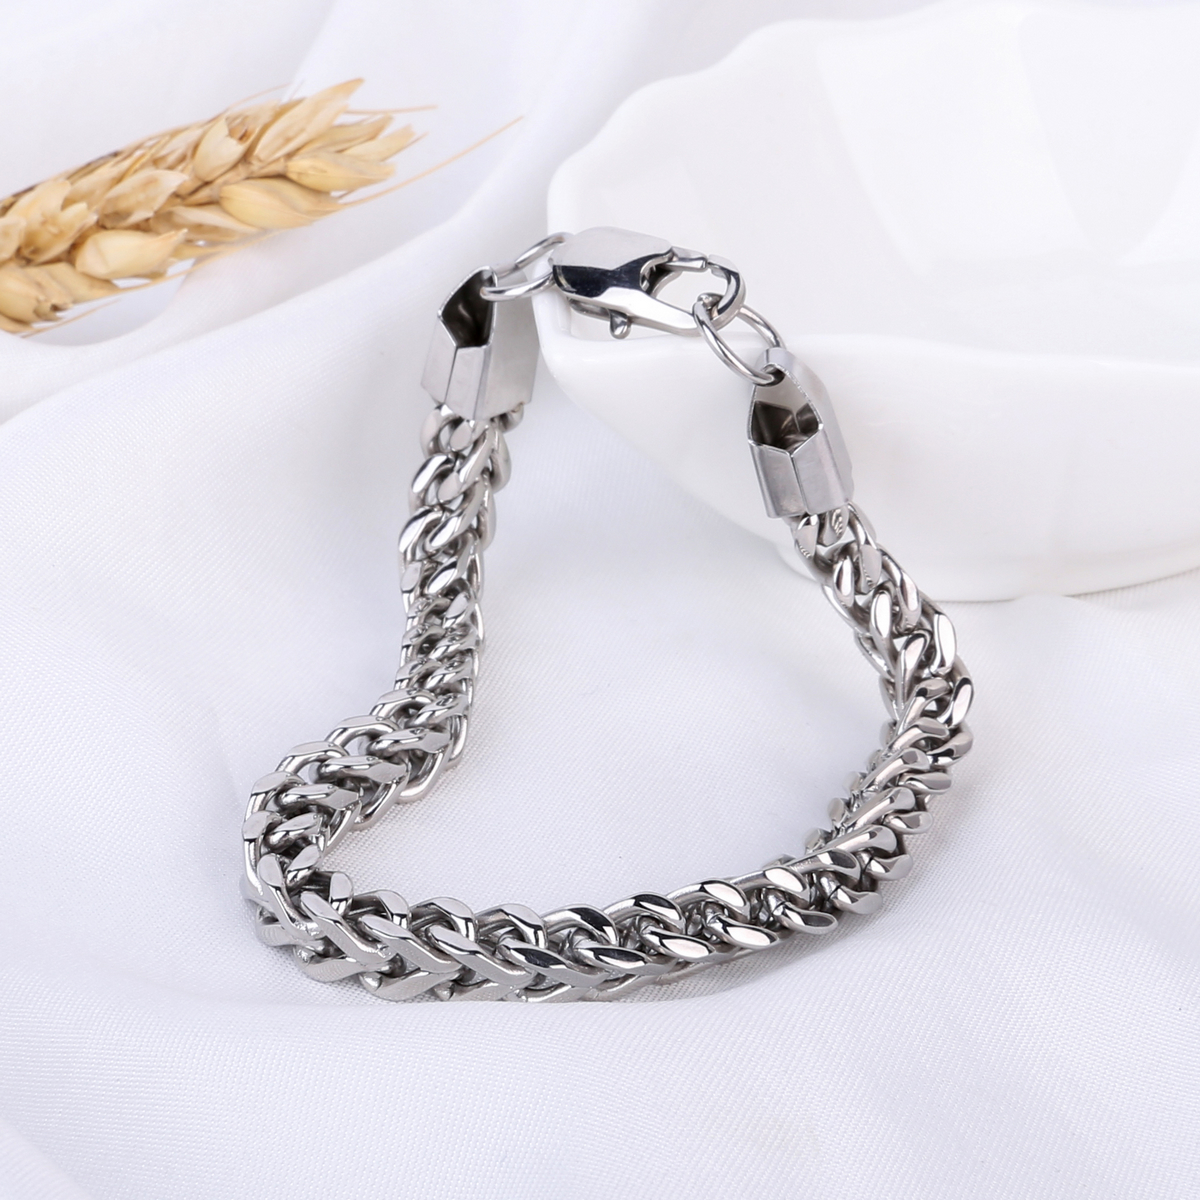 Mens Stainless Steel Bracelet Hip Hop Silver Plated Lobster Clasp Link Chain Bracelets & Bangles Fashion DIY Jewelry 22cm